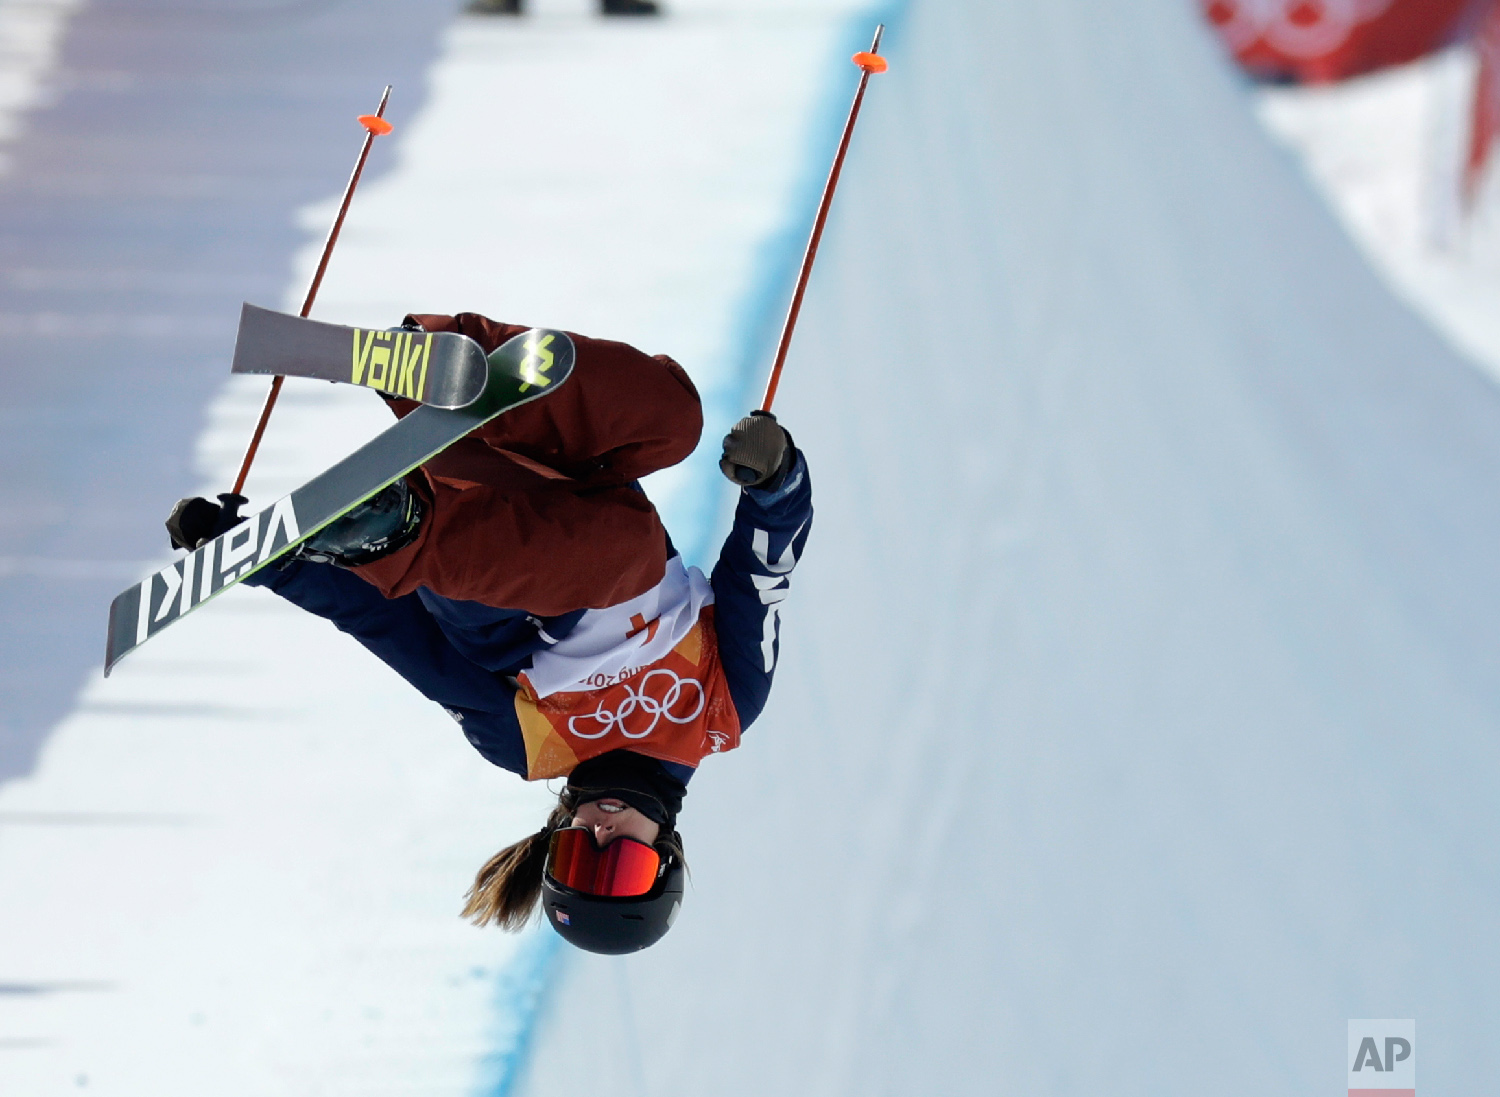 Maddie Bowman, of the United States, jumps during the women's halfpipe final at Phoenix Snow Park at the 2018 Winter Olympics in Pyeongchang, South Korea, Tuesday, Feb. 20, 2018. (AP Photo/Kin Cheung)